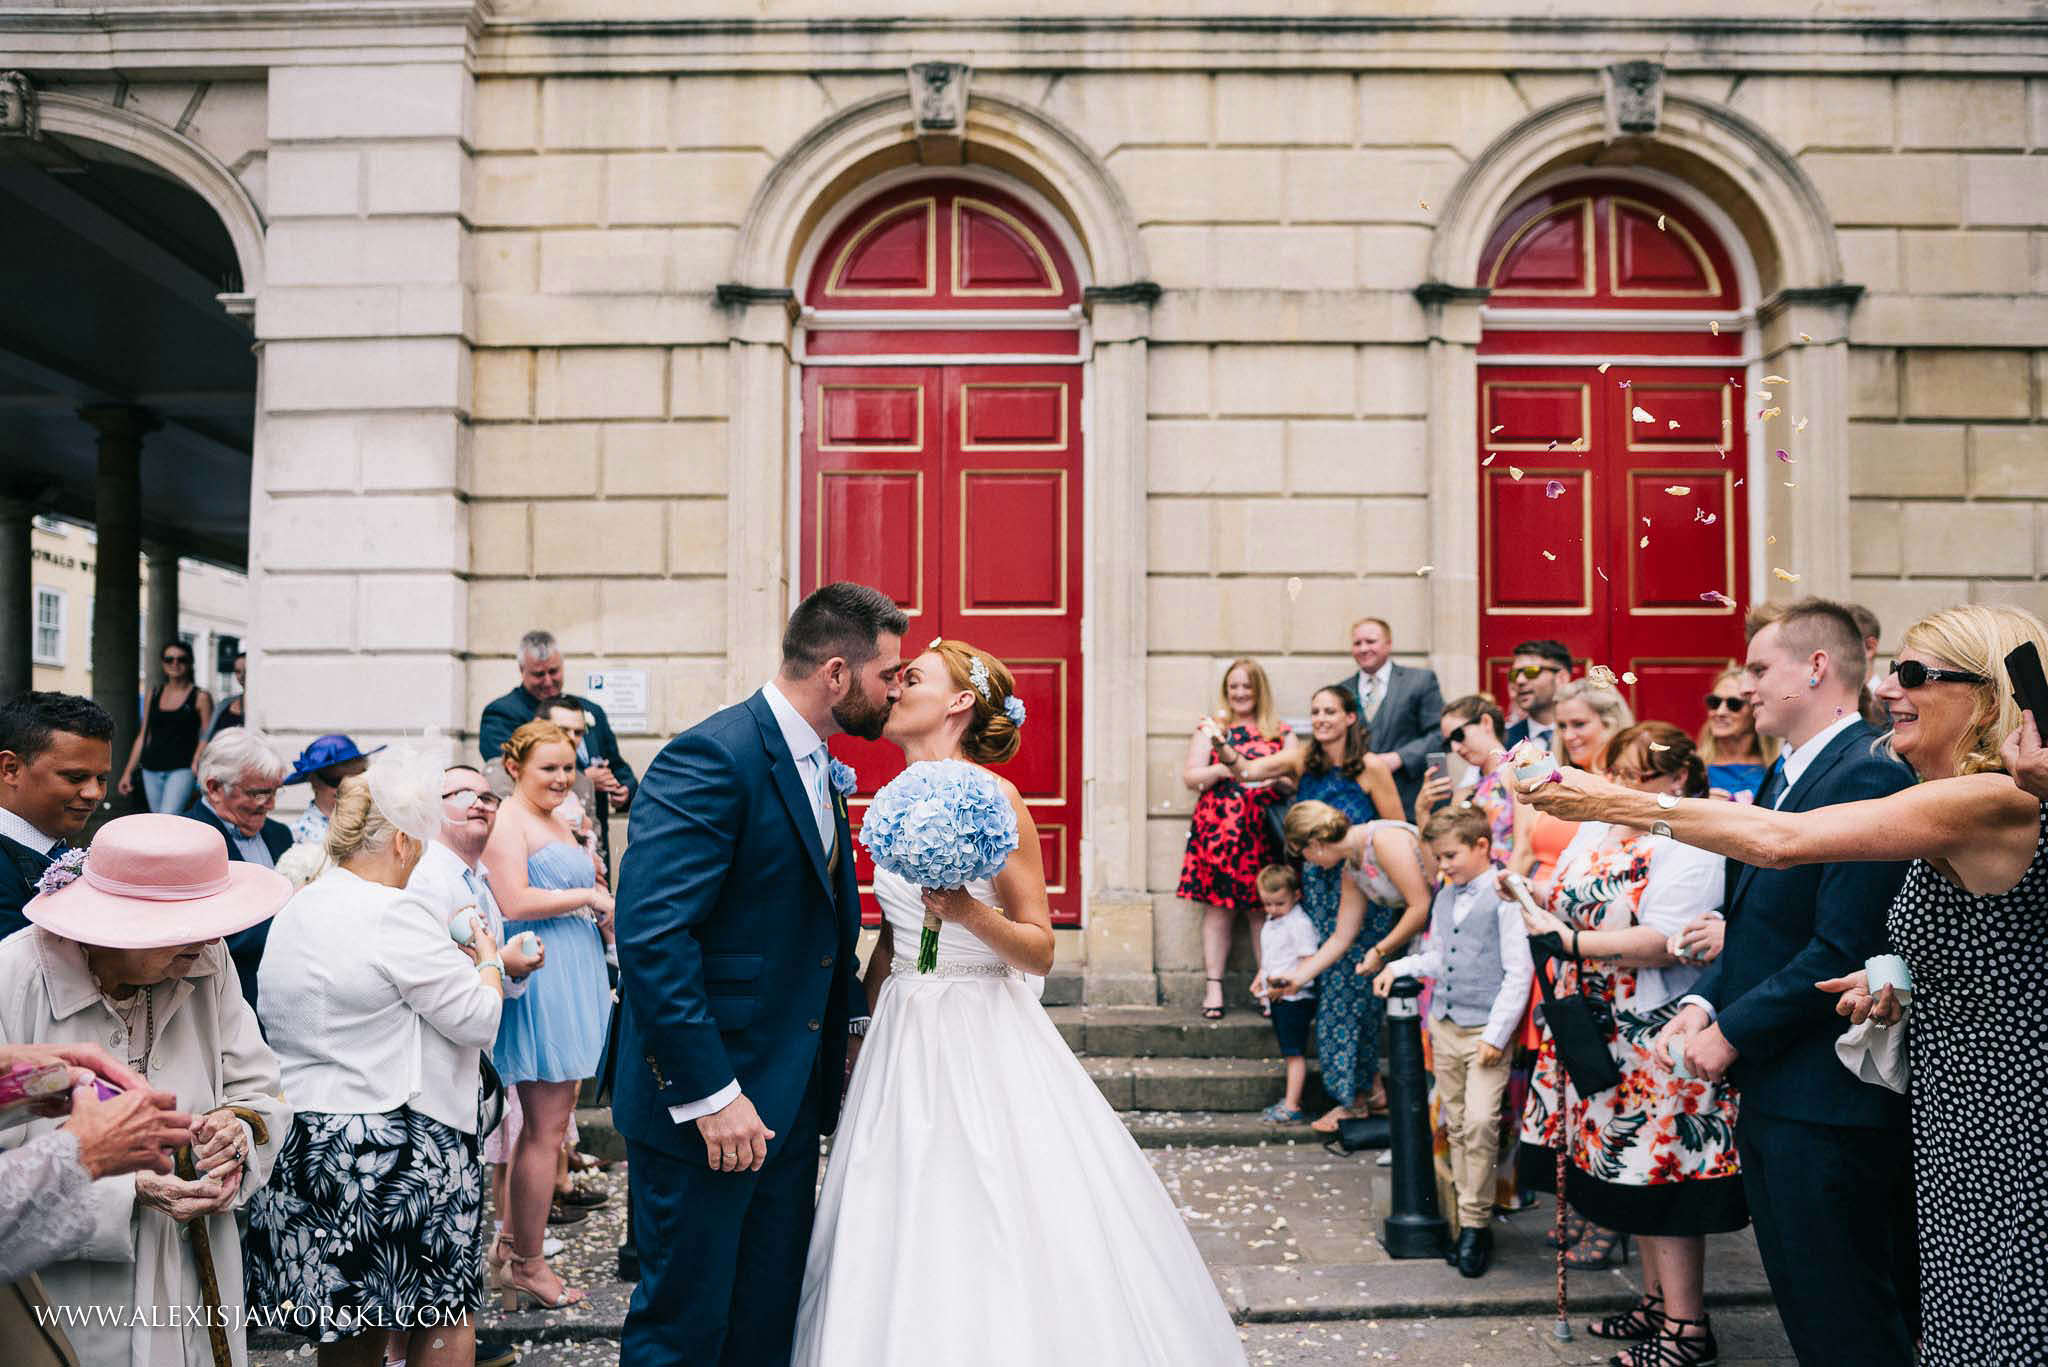 Windsor Guildhall Wedding Photographer  Alexis Jaworski